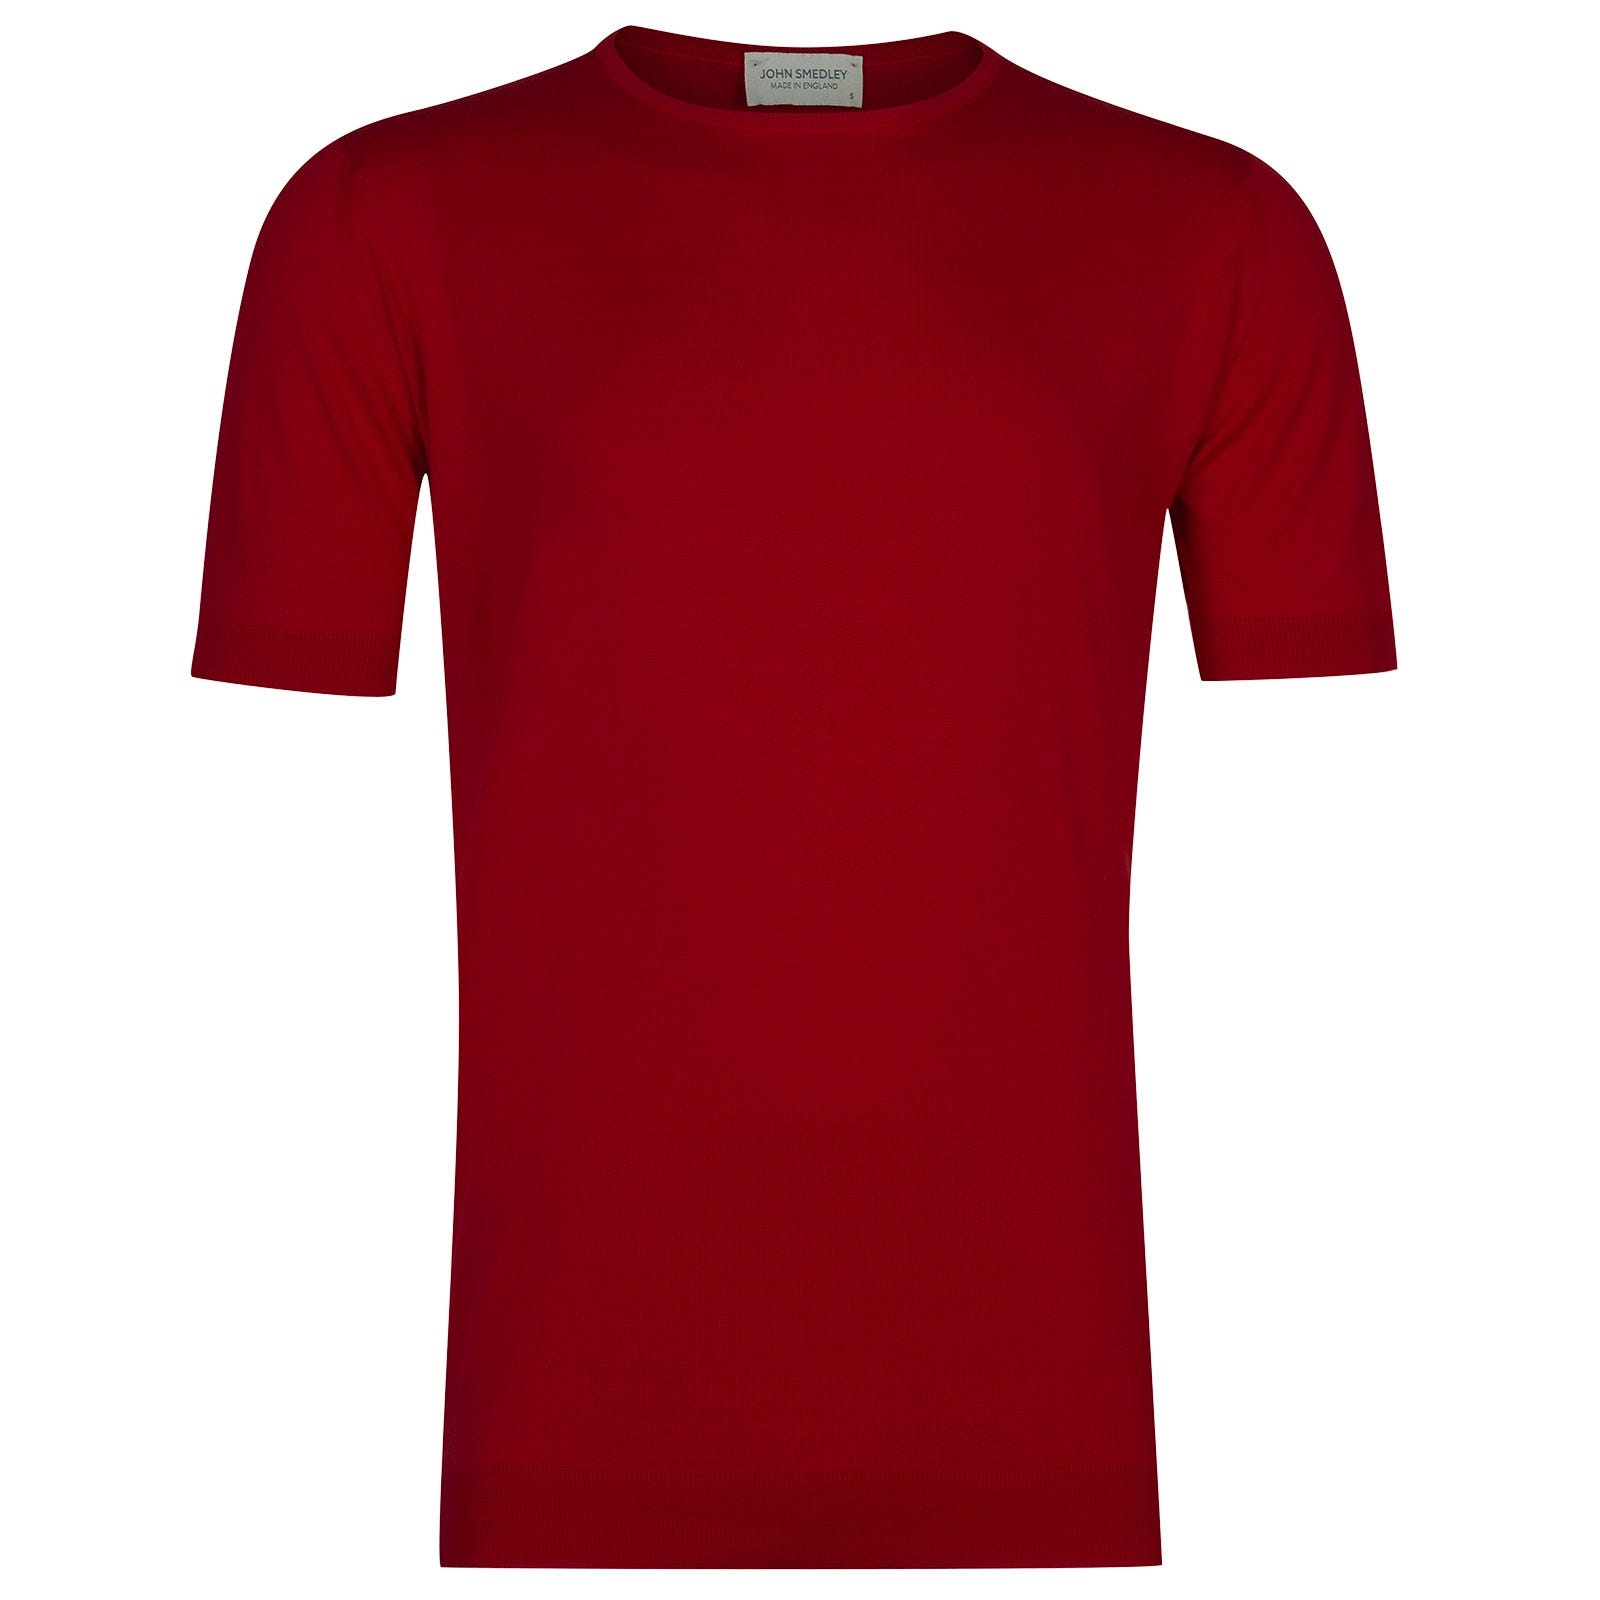 John Smedley Belden Sea Island Cotton T-shirt in Dandy Red-L